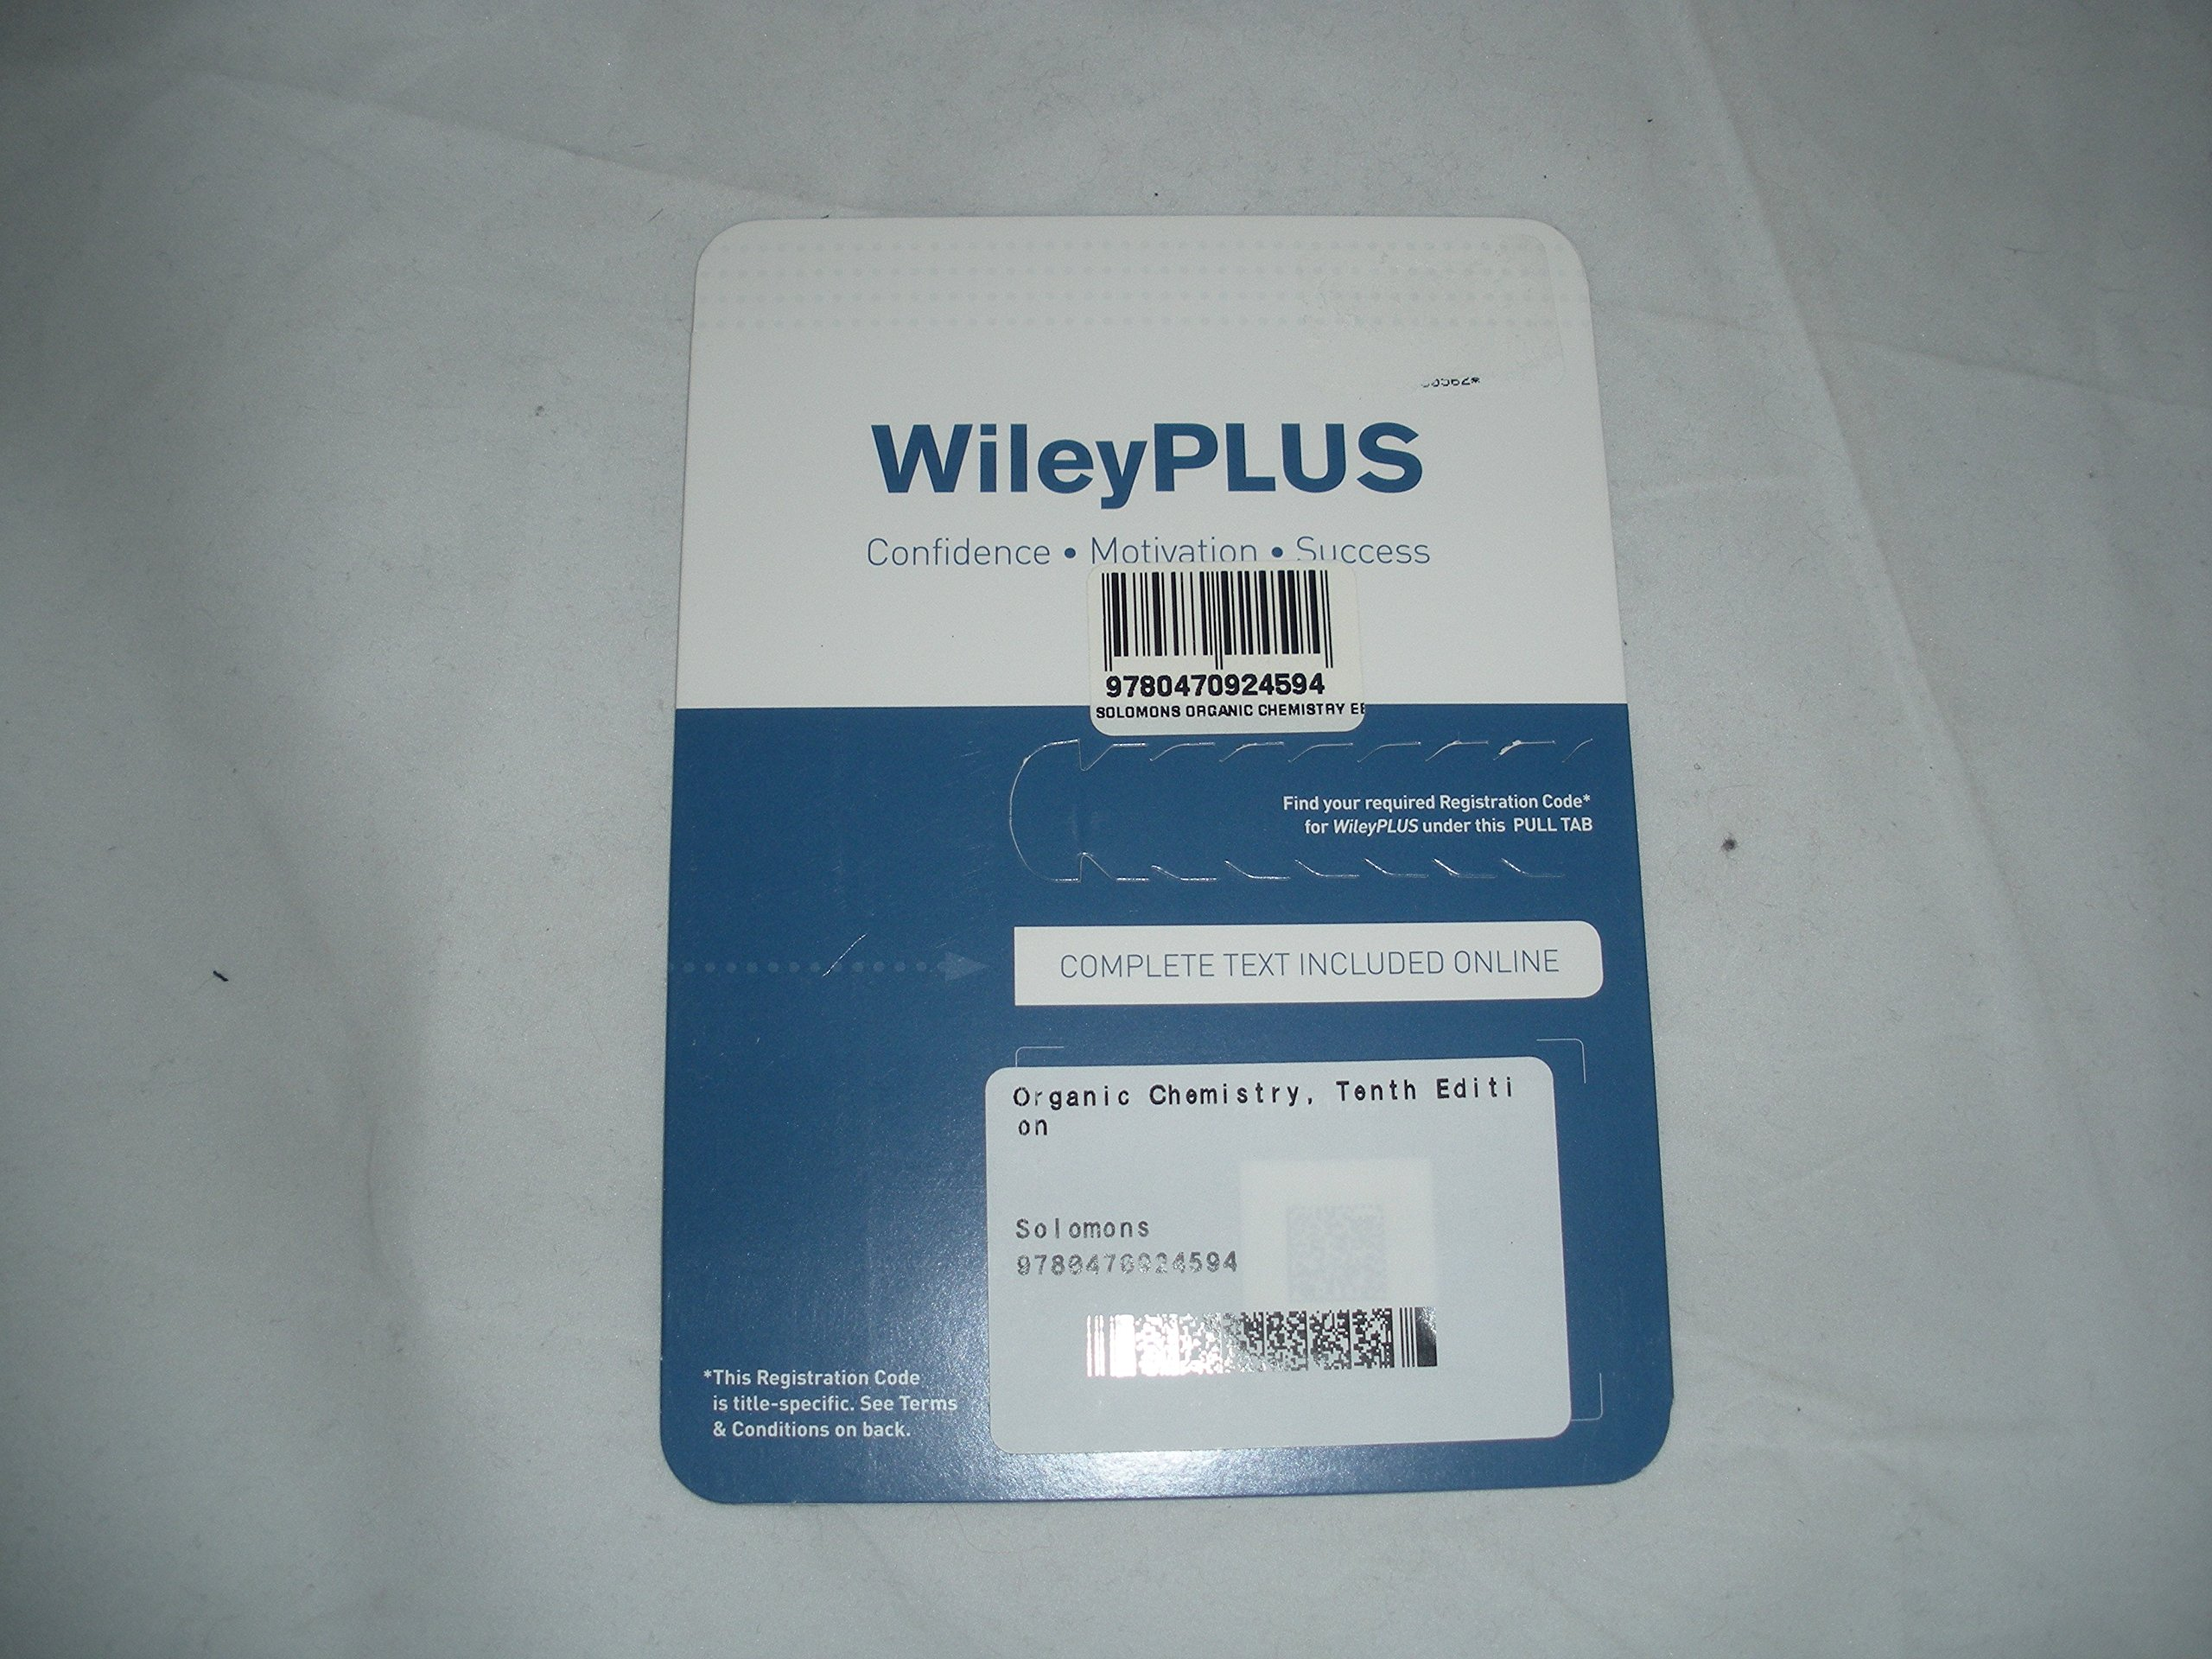 Download WileyPLUS Printed Access Card for Use With Organic Chemistry 10th Edition ISBN-13: 9780470924594 ISBN-10: 0470924594 PDF